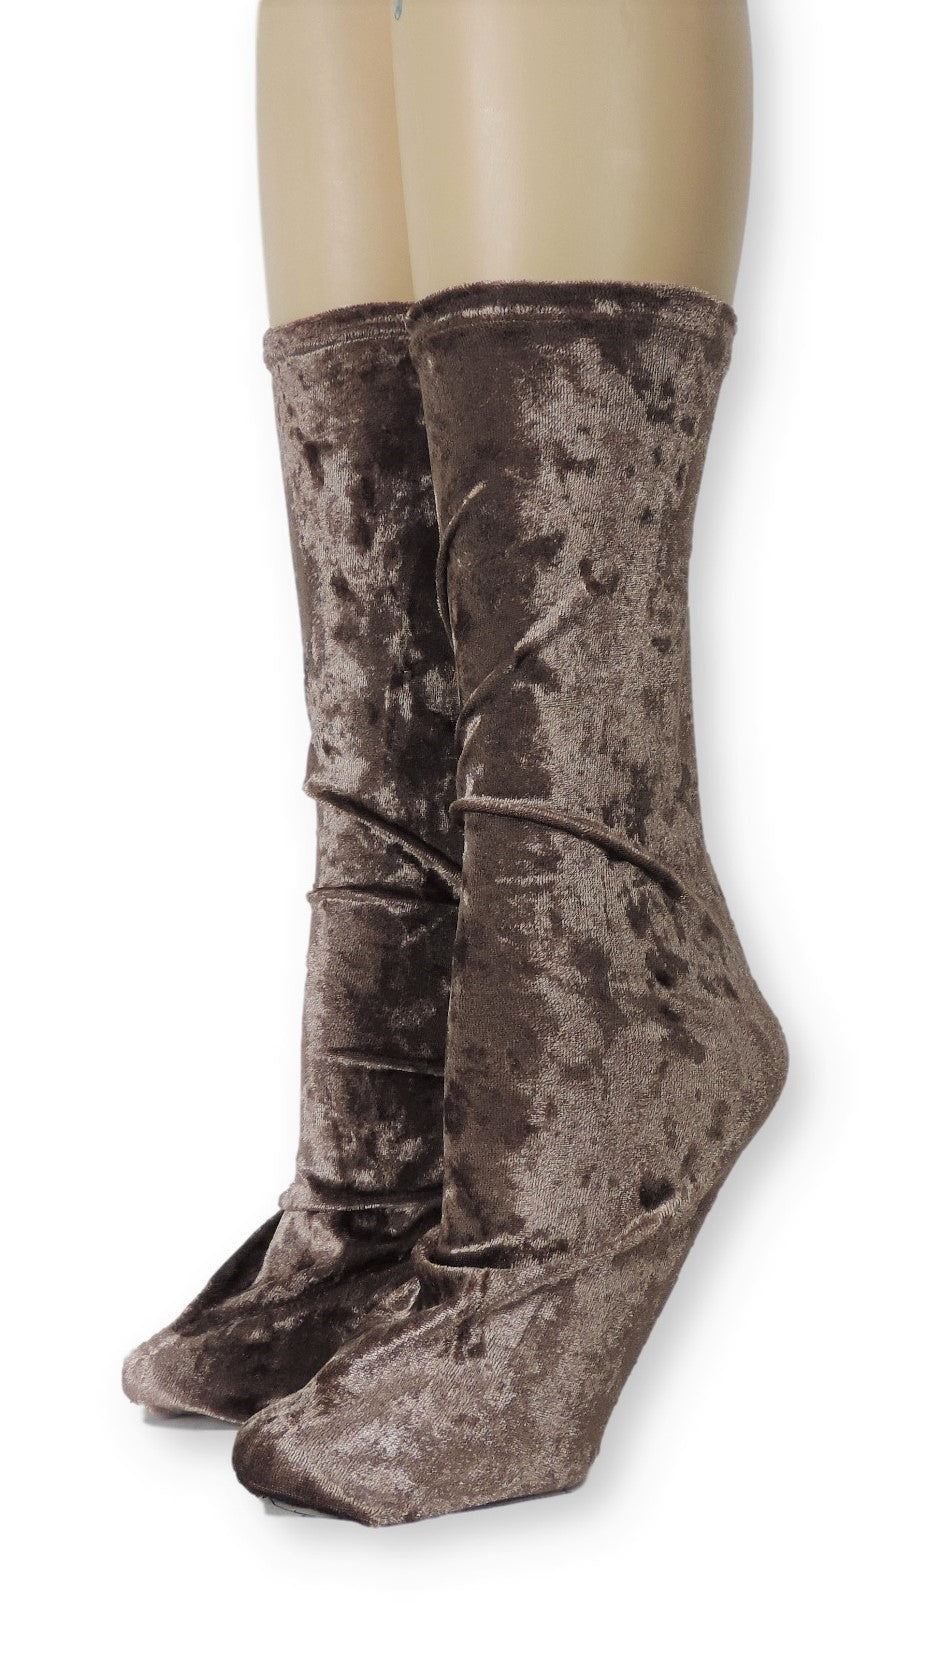 Brown Crushed Velvet Socks